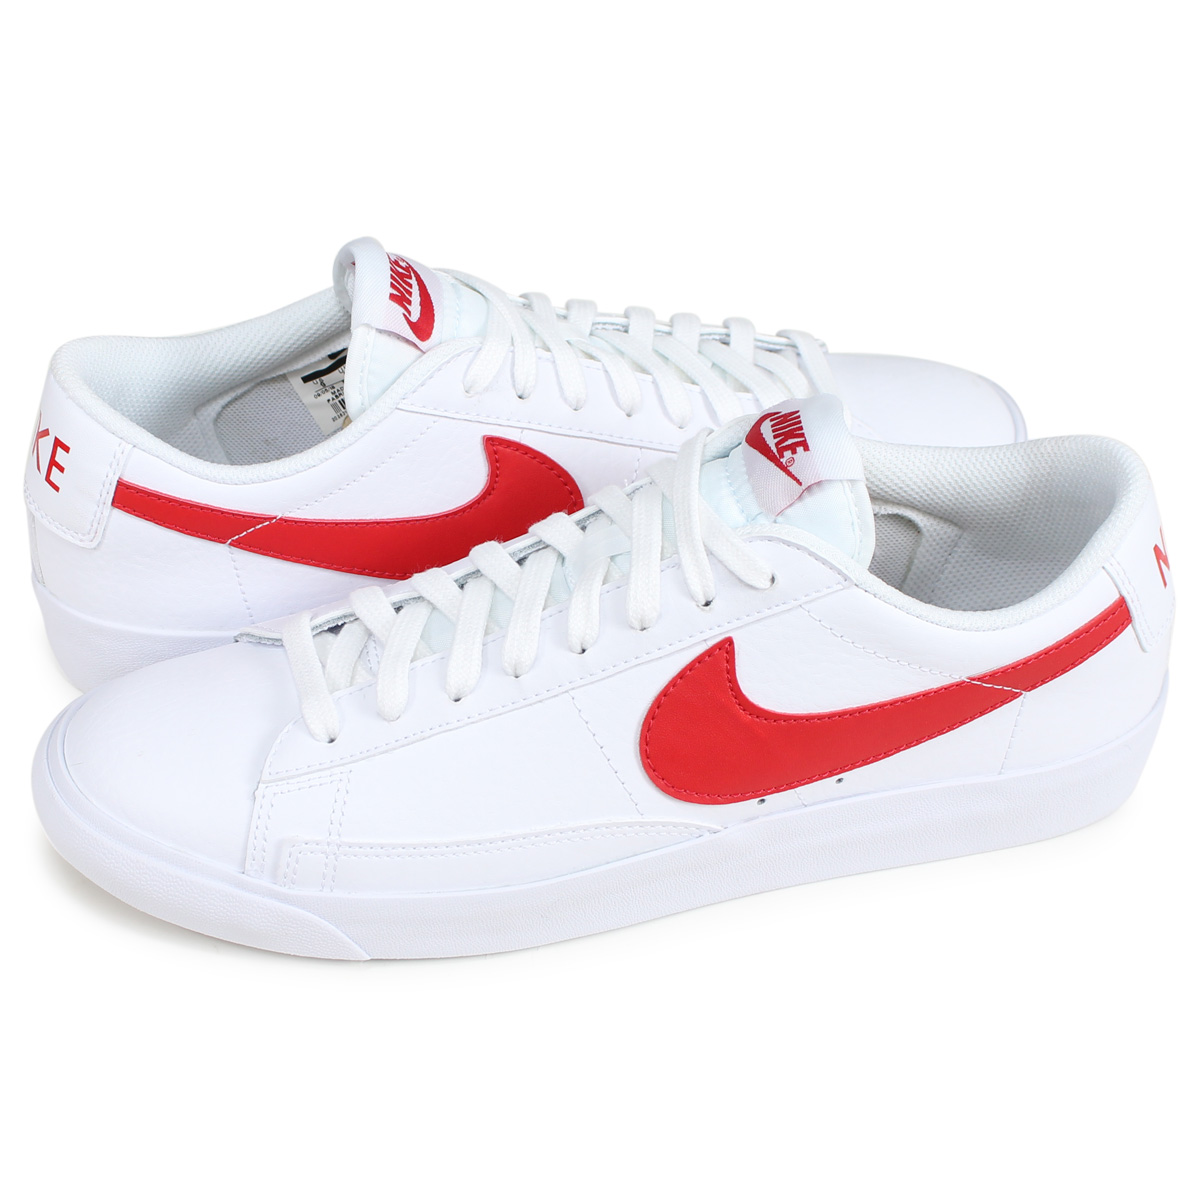 best website 0b4ff d020d Nike NIKE blazer low sneakers men BLAZER LOW LEATHER white BQ7306-600 load  planned Shinnyu load in reservation product 215 containing 192